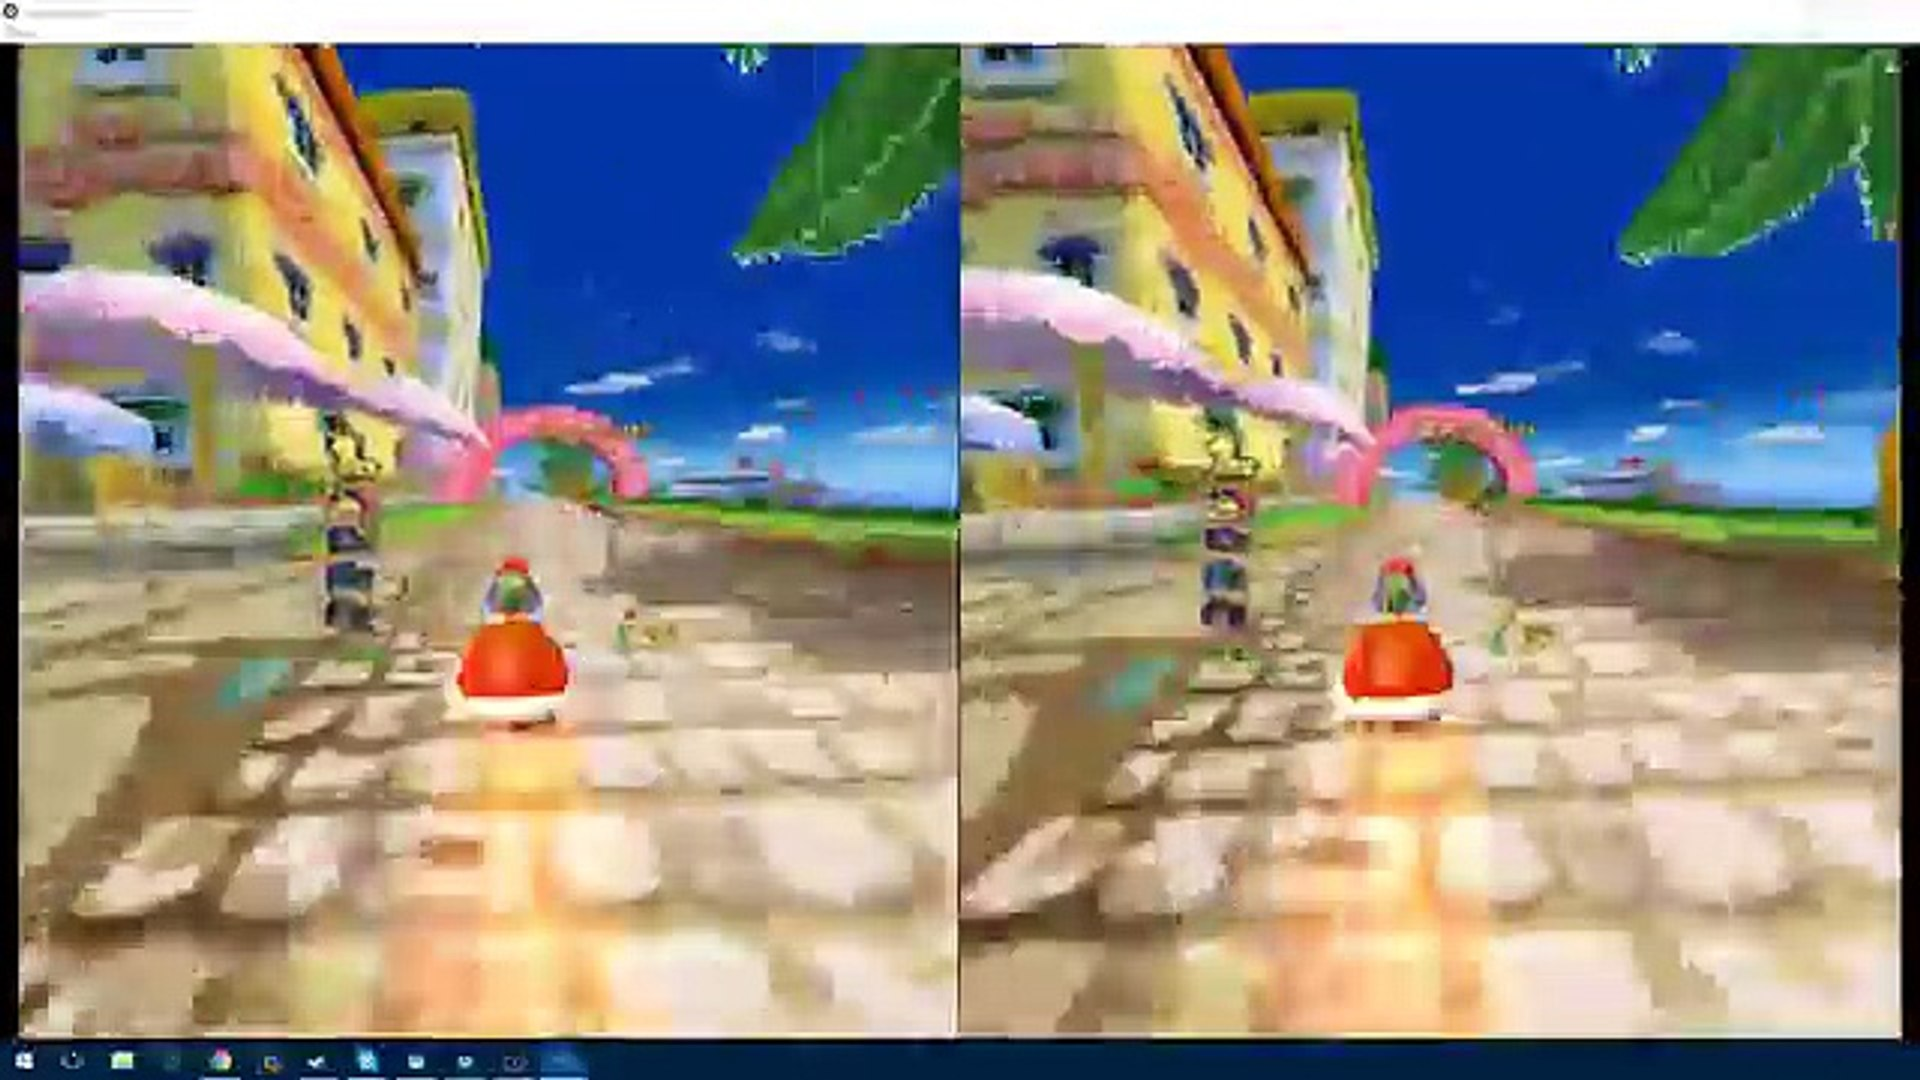 HTC Vive - Mario Kart: Double Dash!! mushroom cup gameplay (Dolphin vr  emulator)